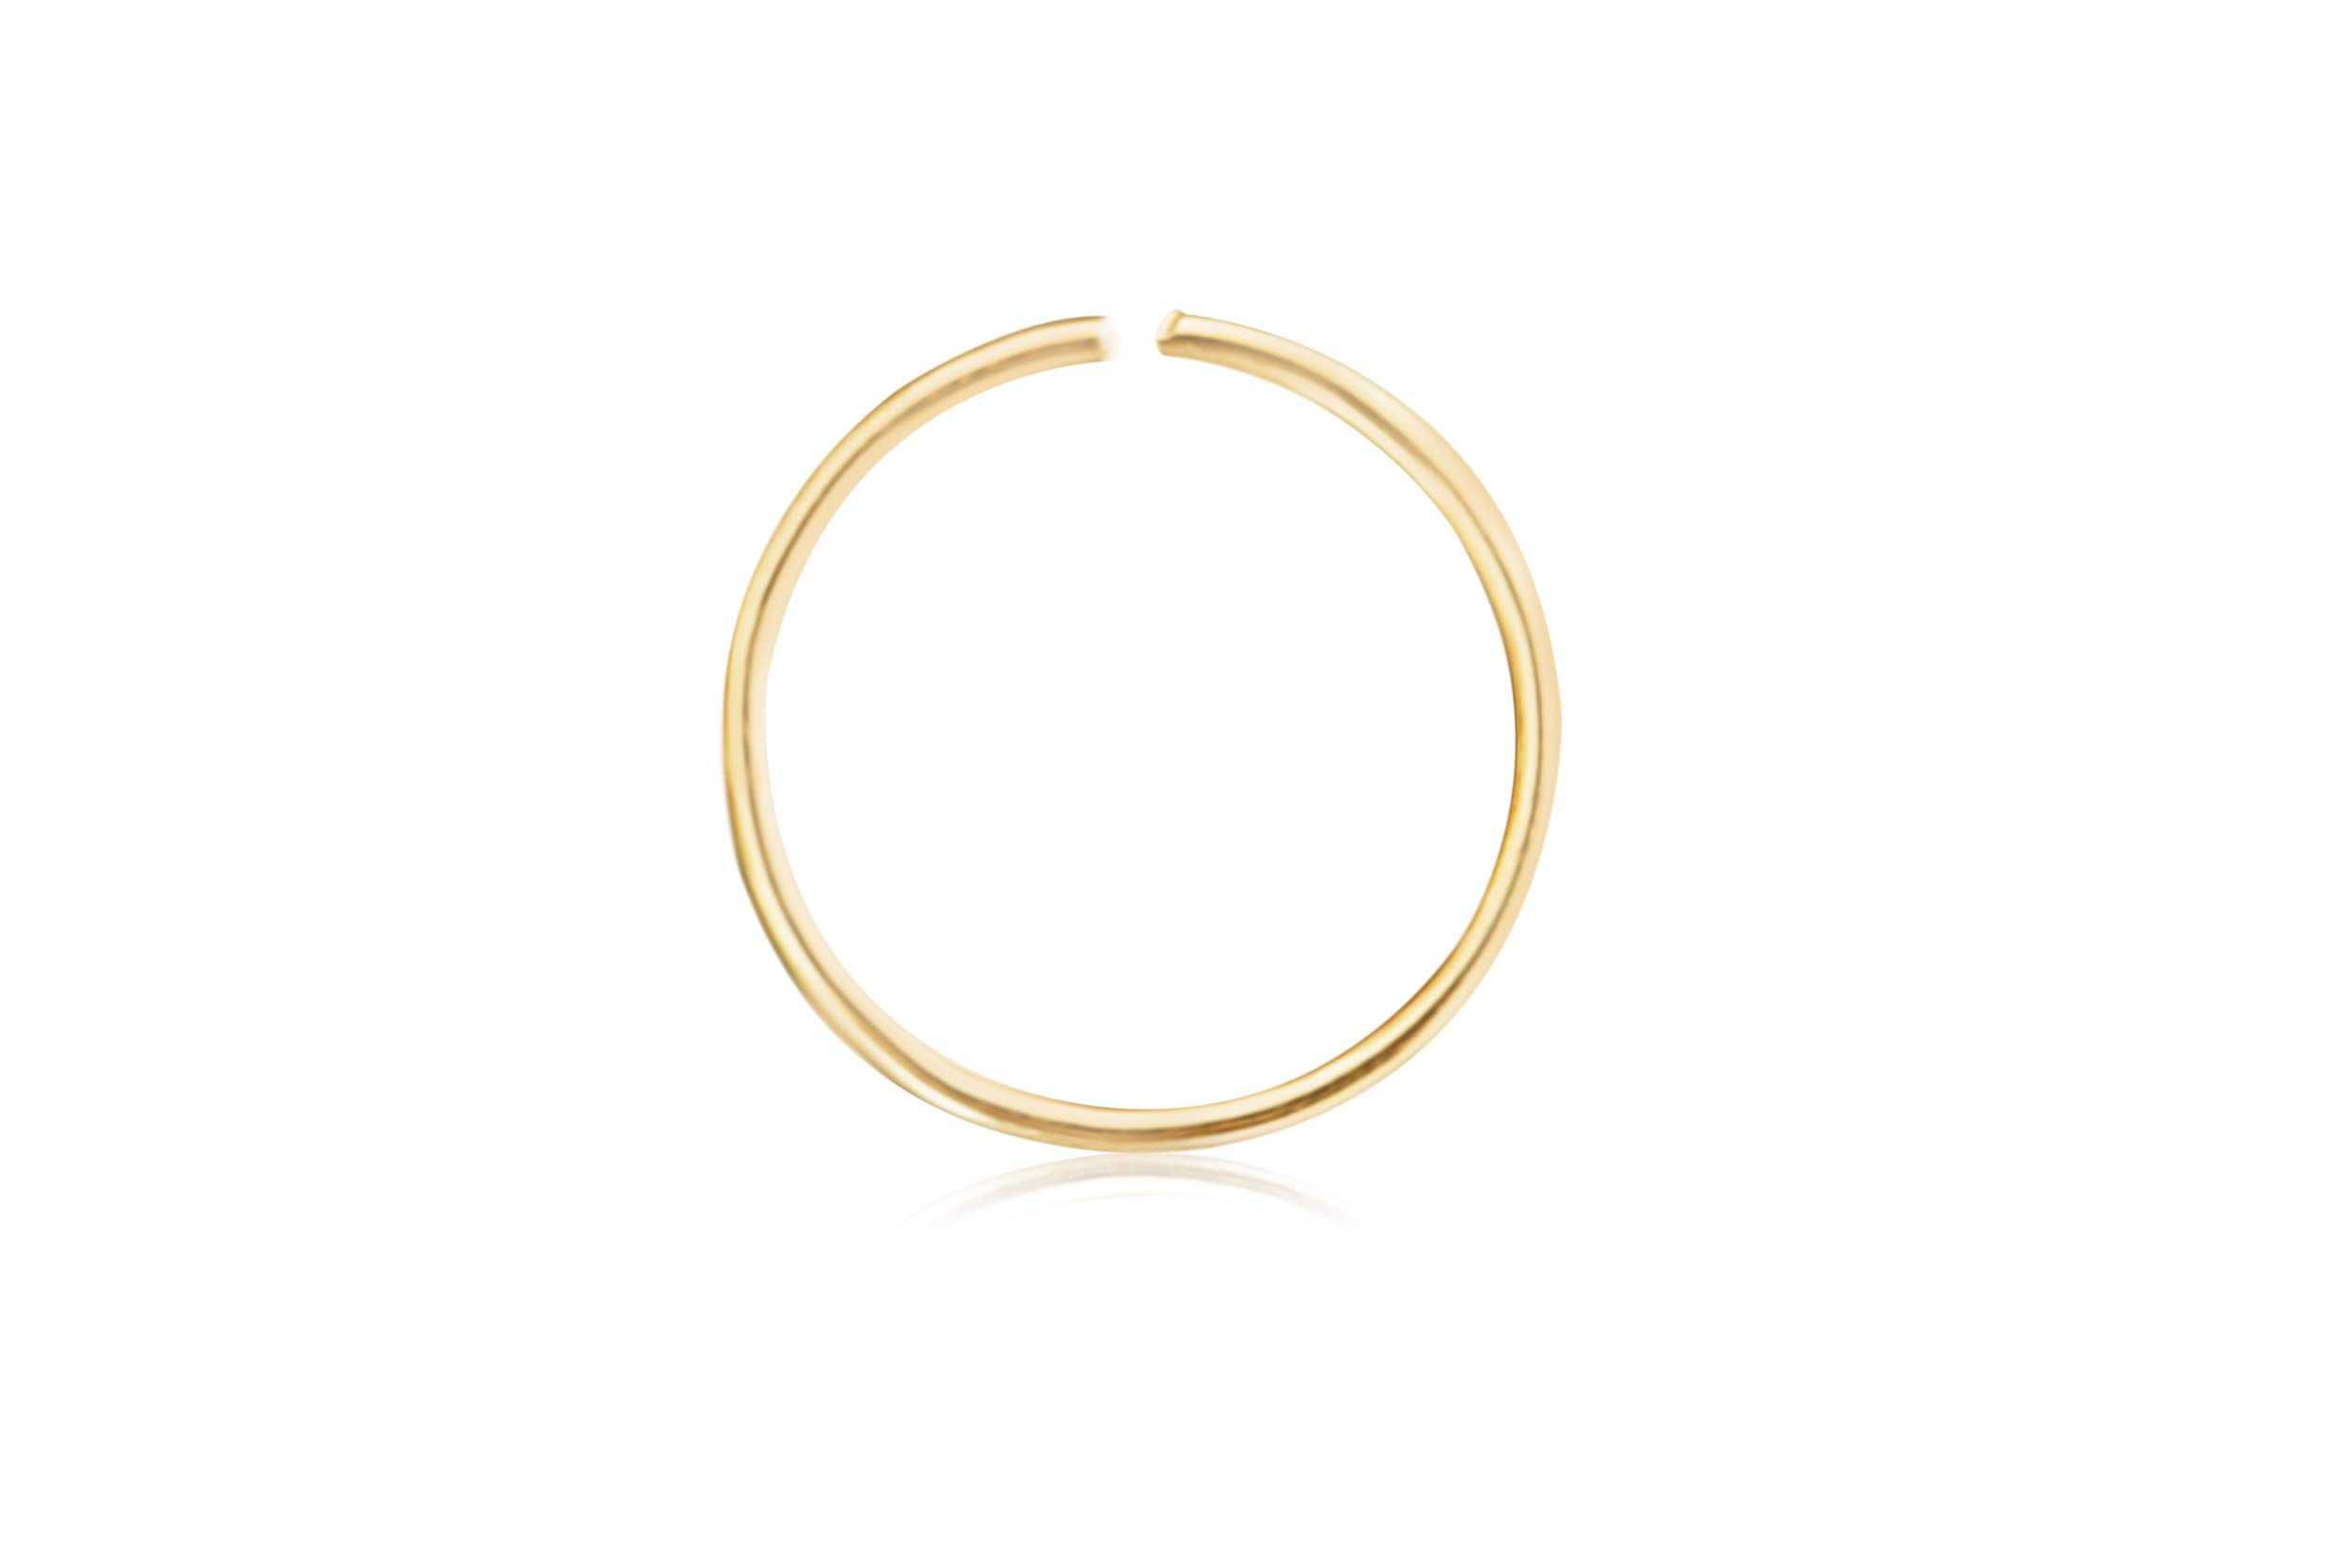 10K Solid Gold Jewelry 10mm Open Round Circle Tragus Cartilage Snug Rook Daith Helix Ear Nose Lip Hoop Ring Piercing Earring For Women